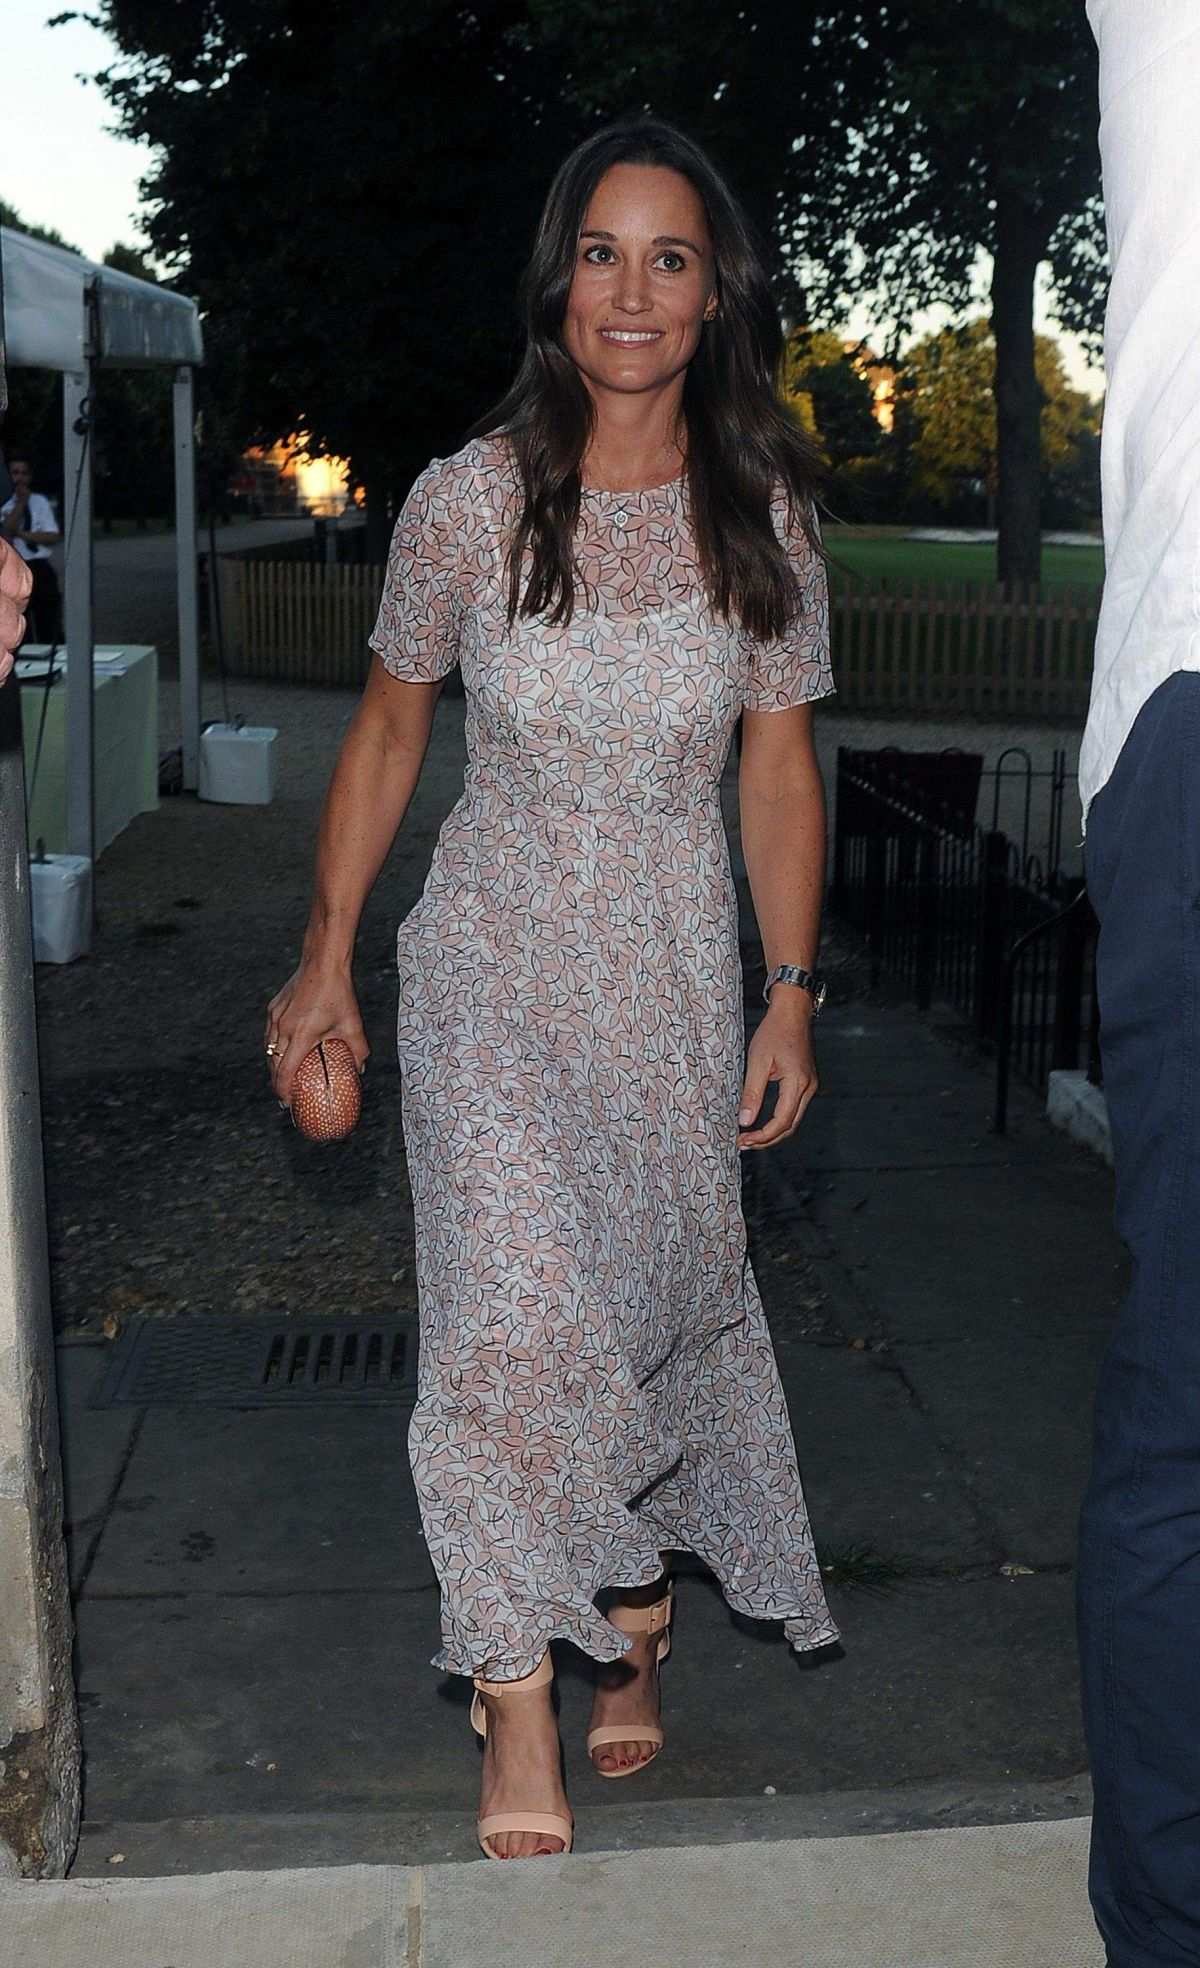 PIPPA MIDDLETON at David Frost Summer Garden Party in London 0718/2016